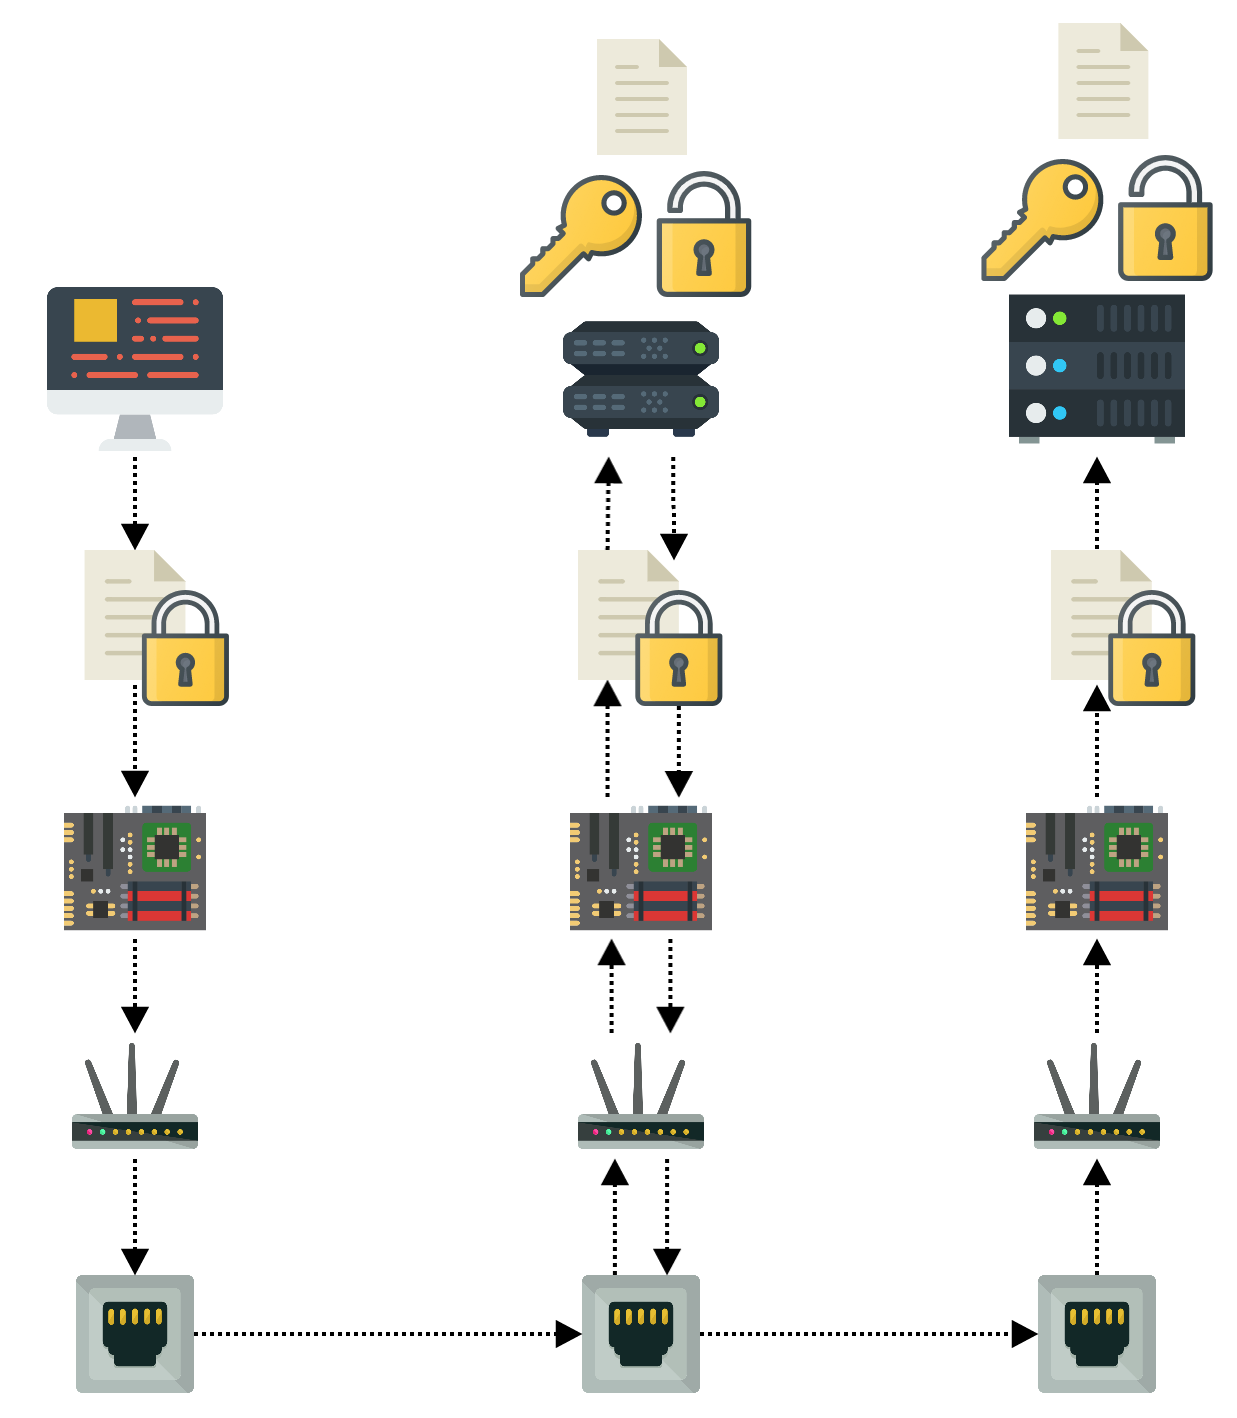 Using AWS Application Load Balancer and Network Load